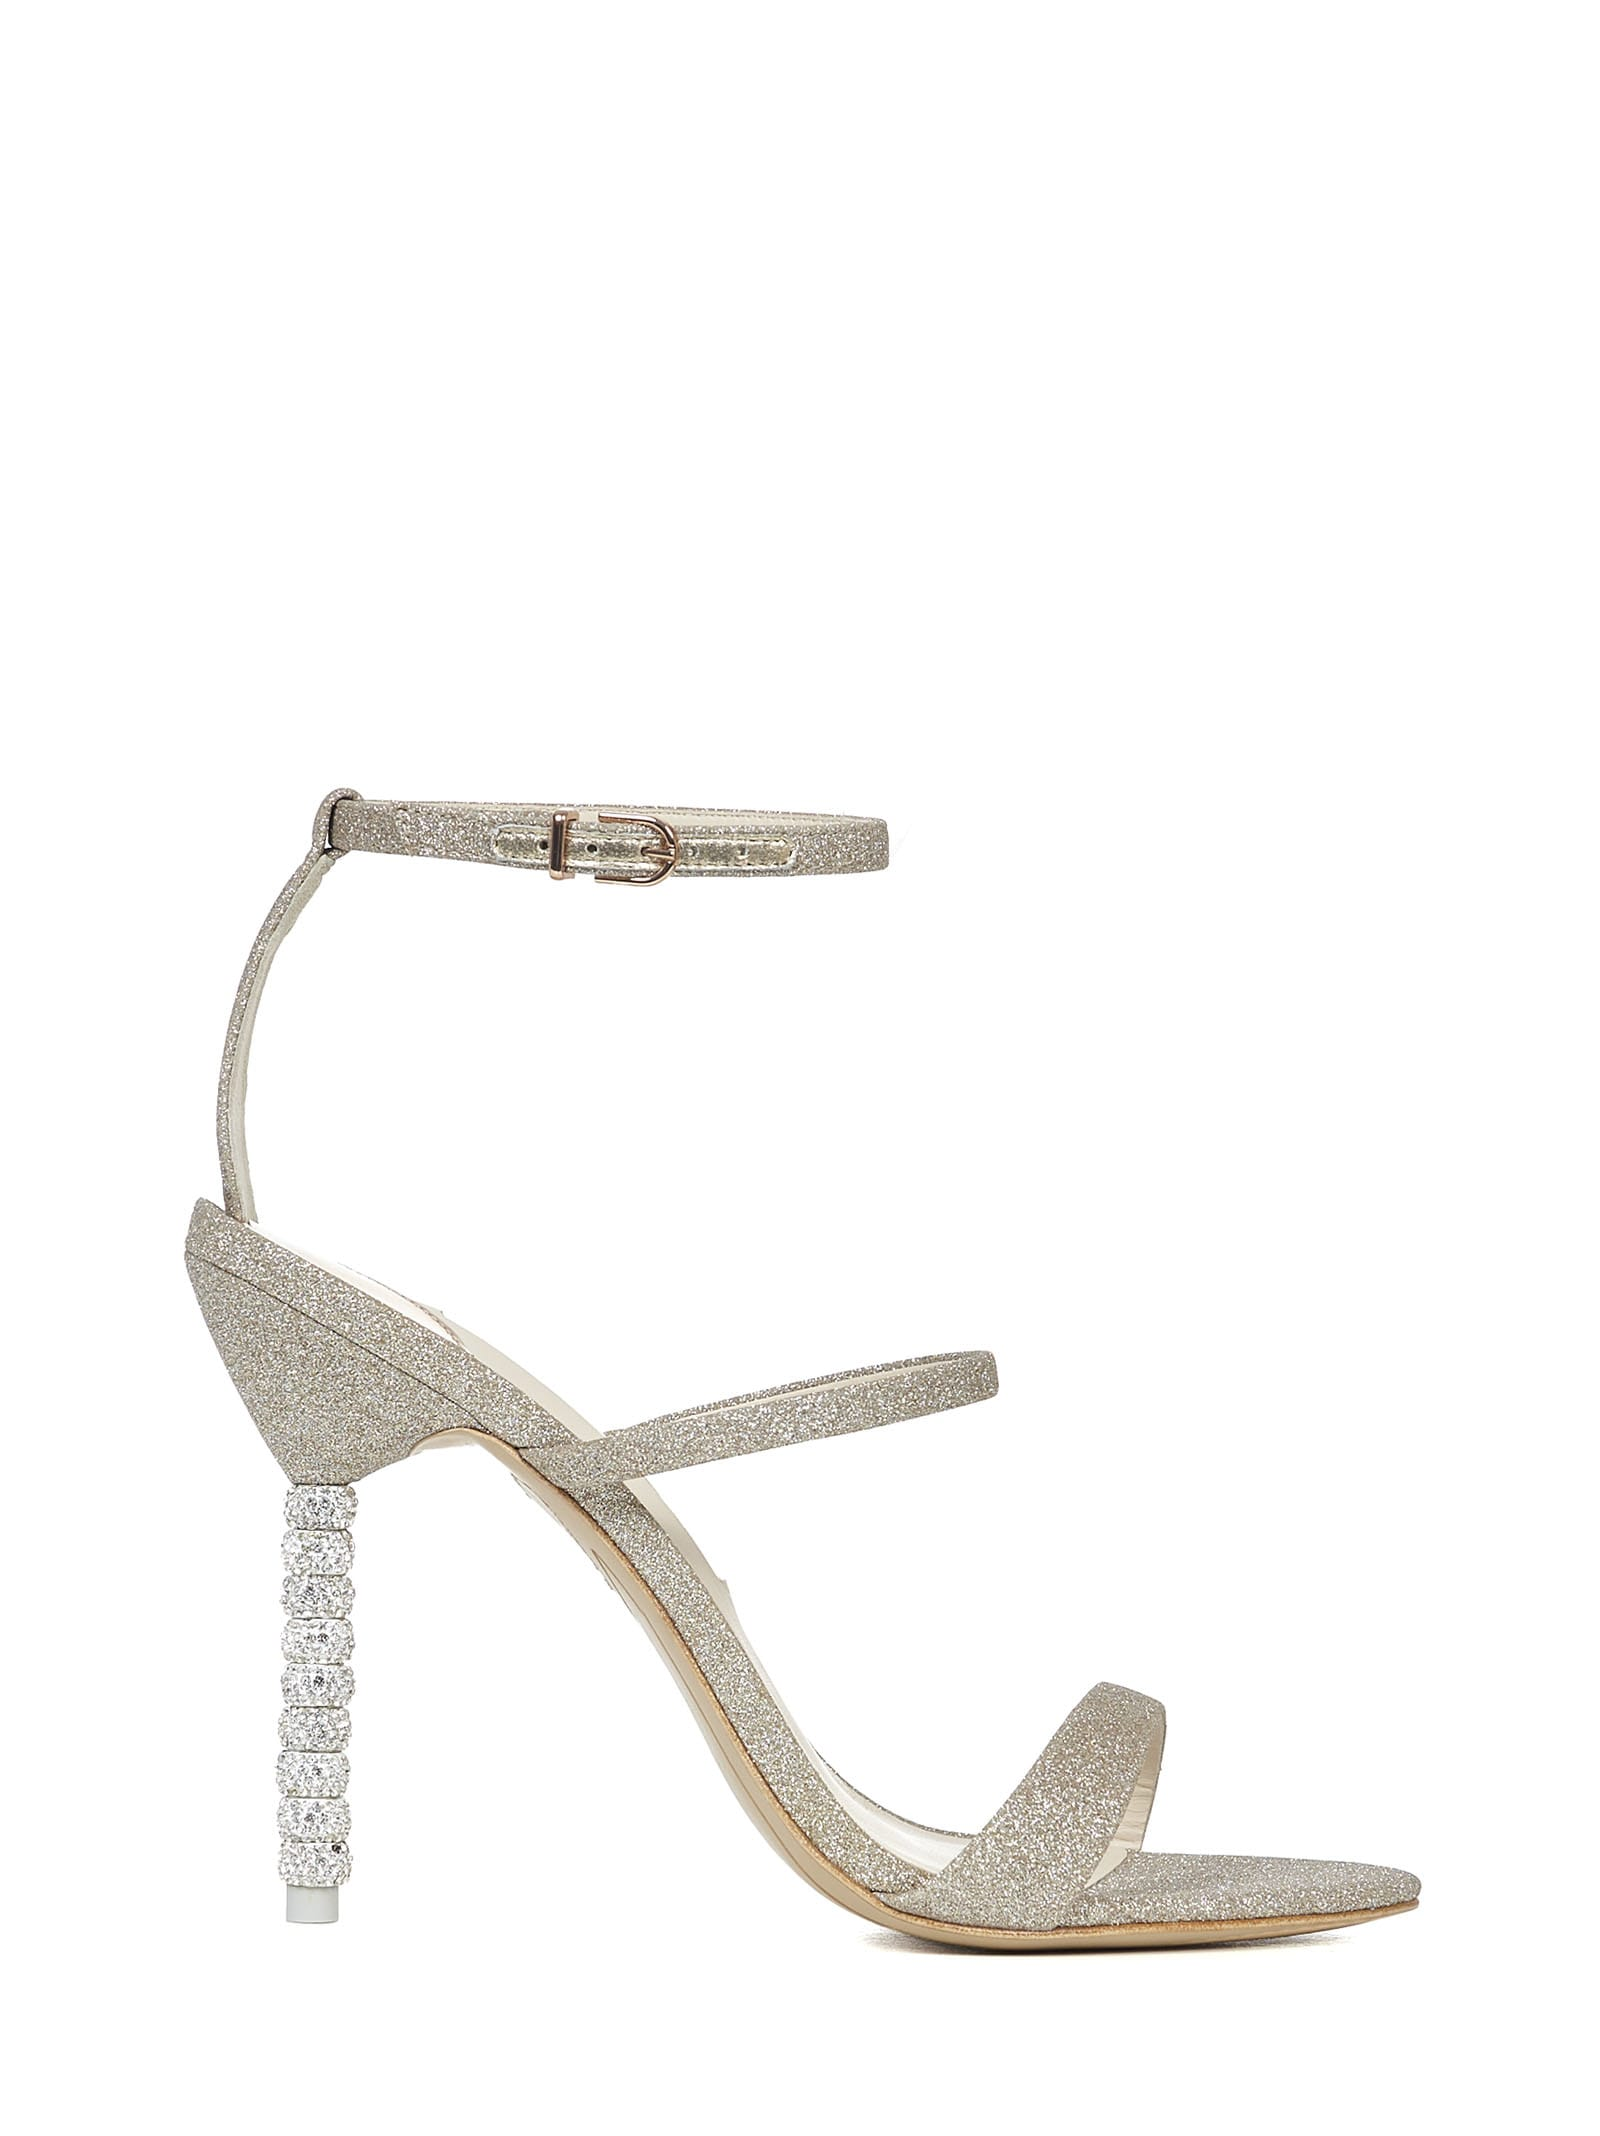 Sophia Webster SOPHIA ROSALIND CRYSTAL WEBSTER SANDALS